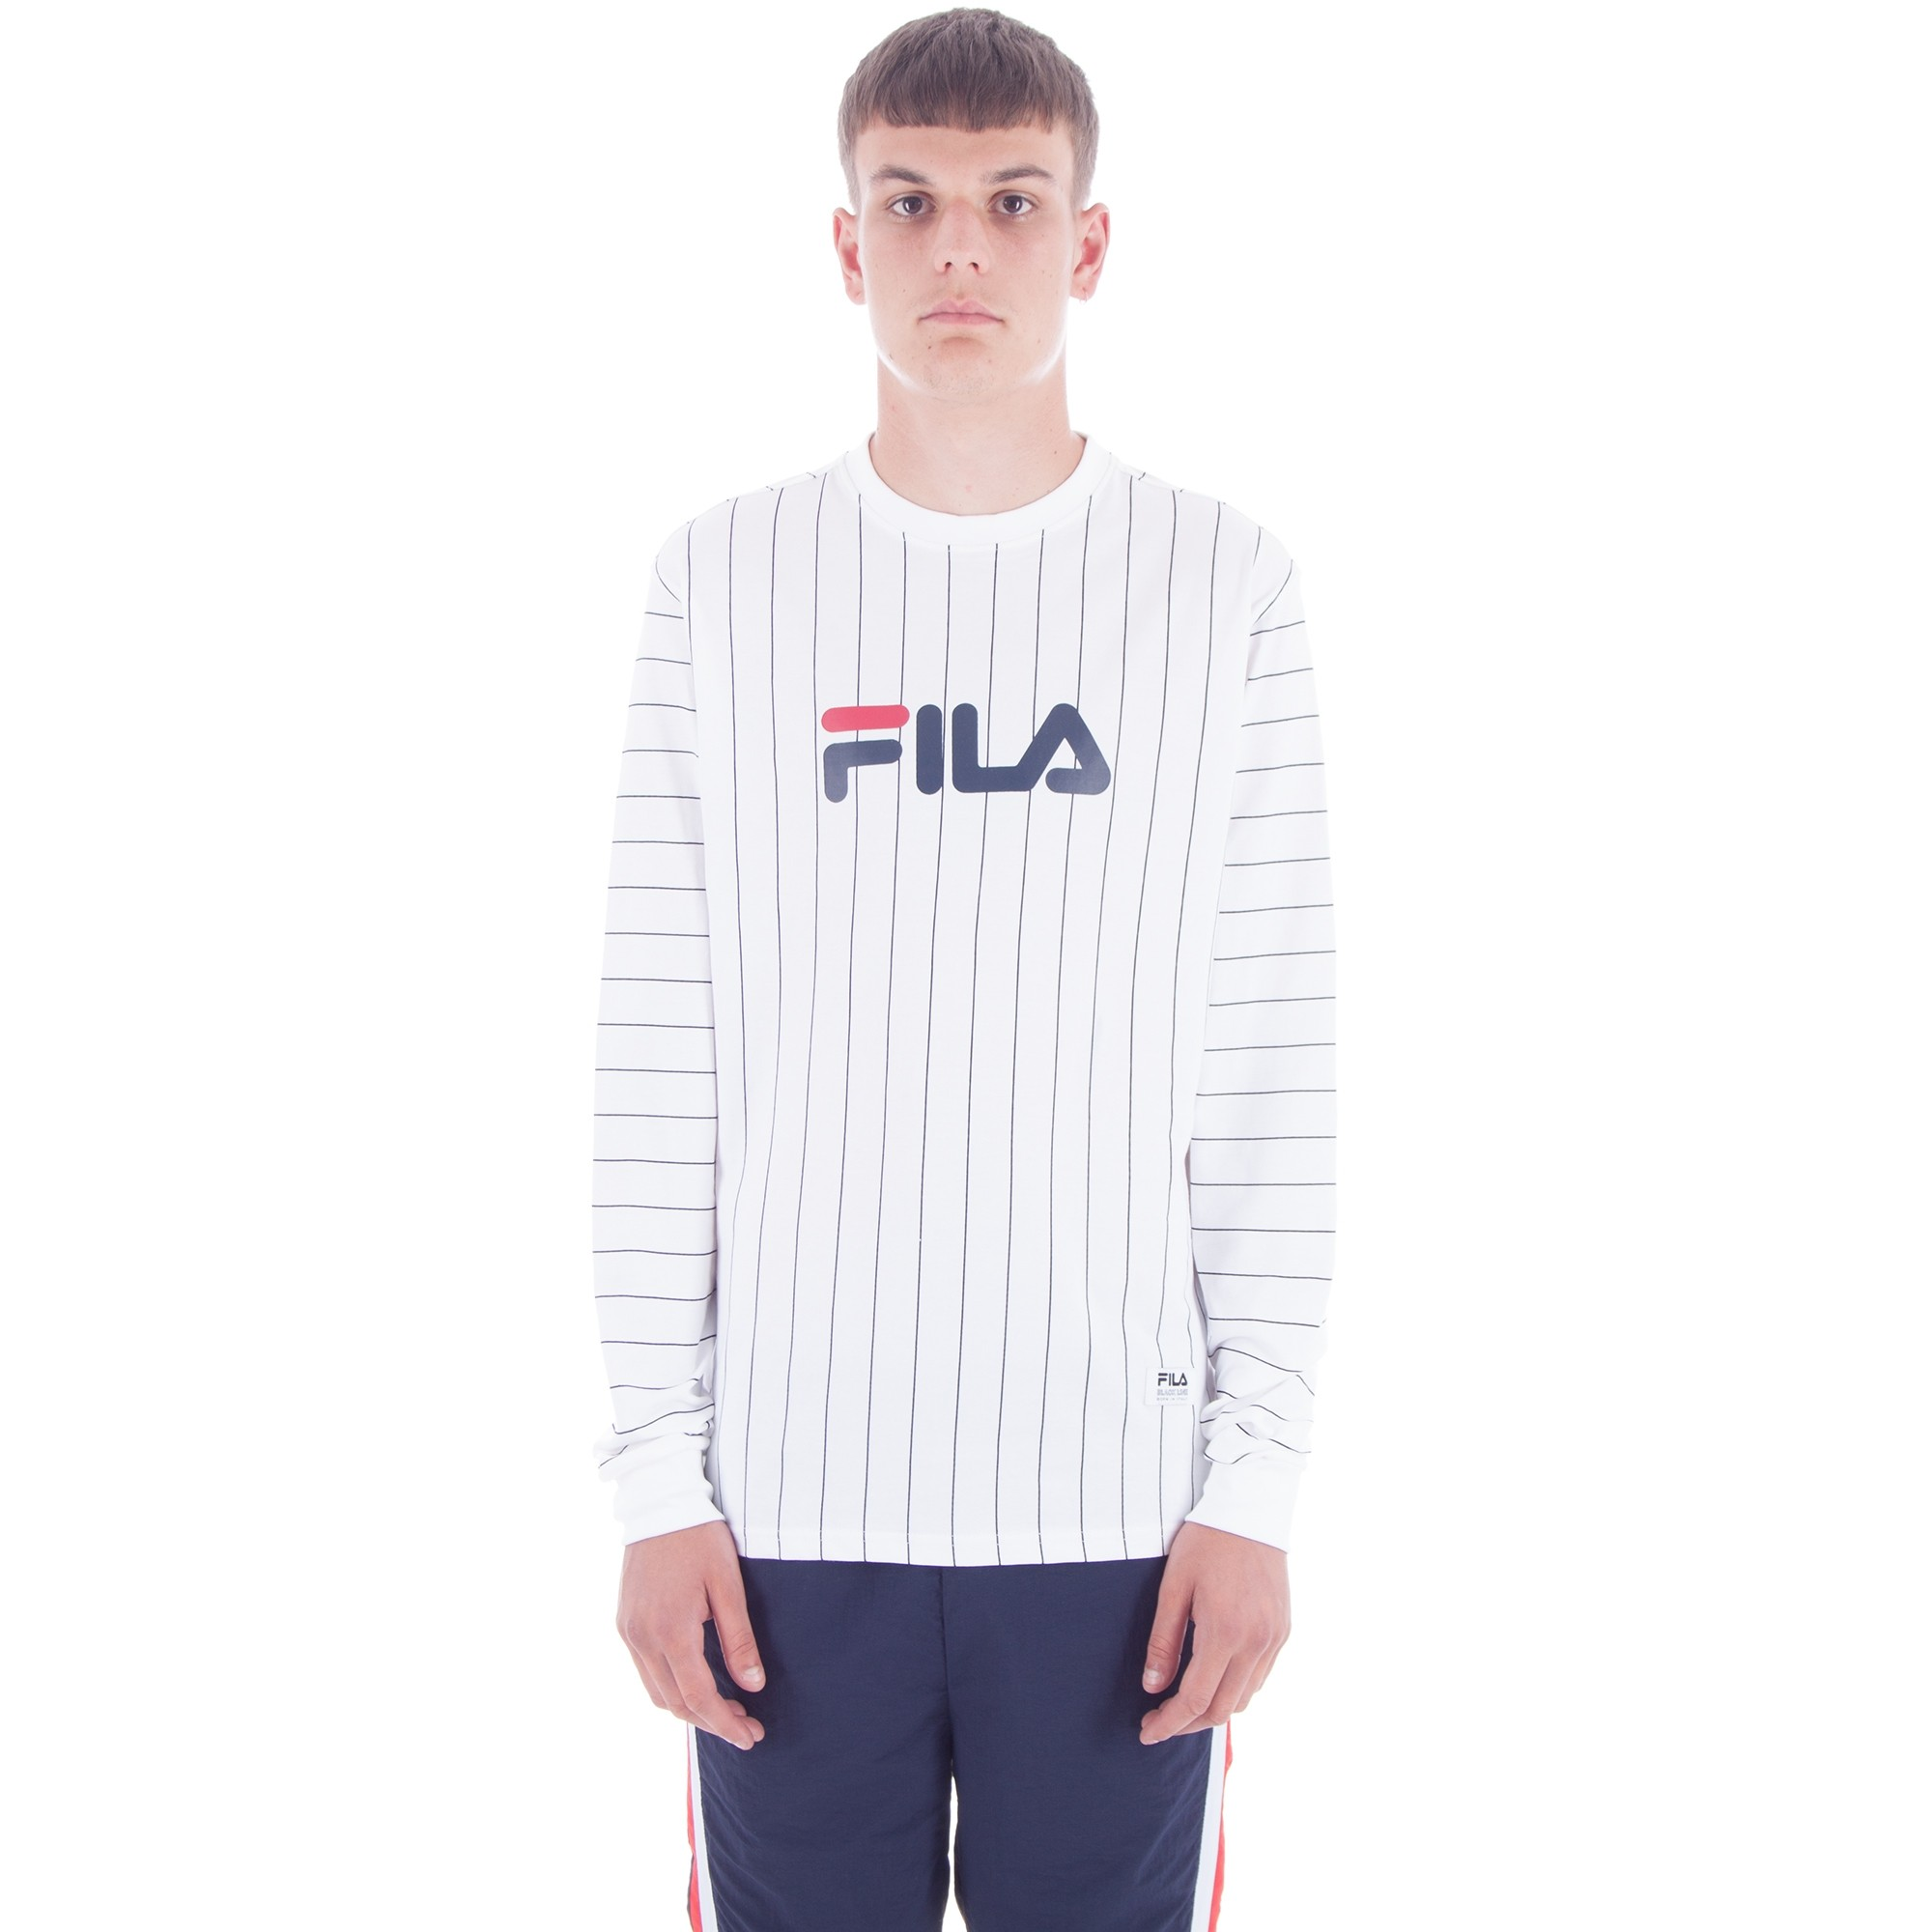 fila long sleeve t shirt. for full information on delivery and customs click here fila long sleeve t shirt h